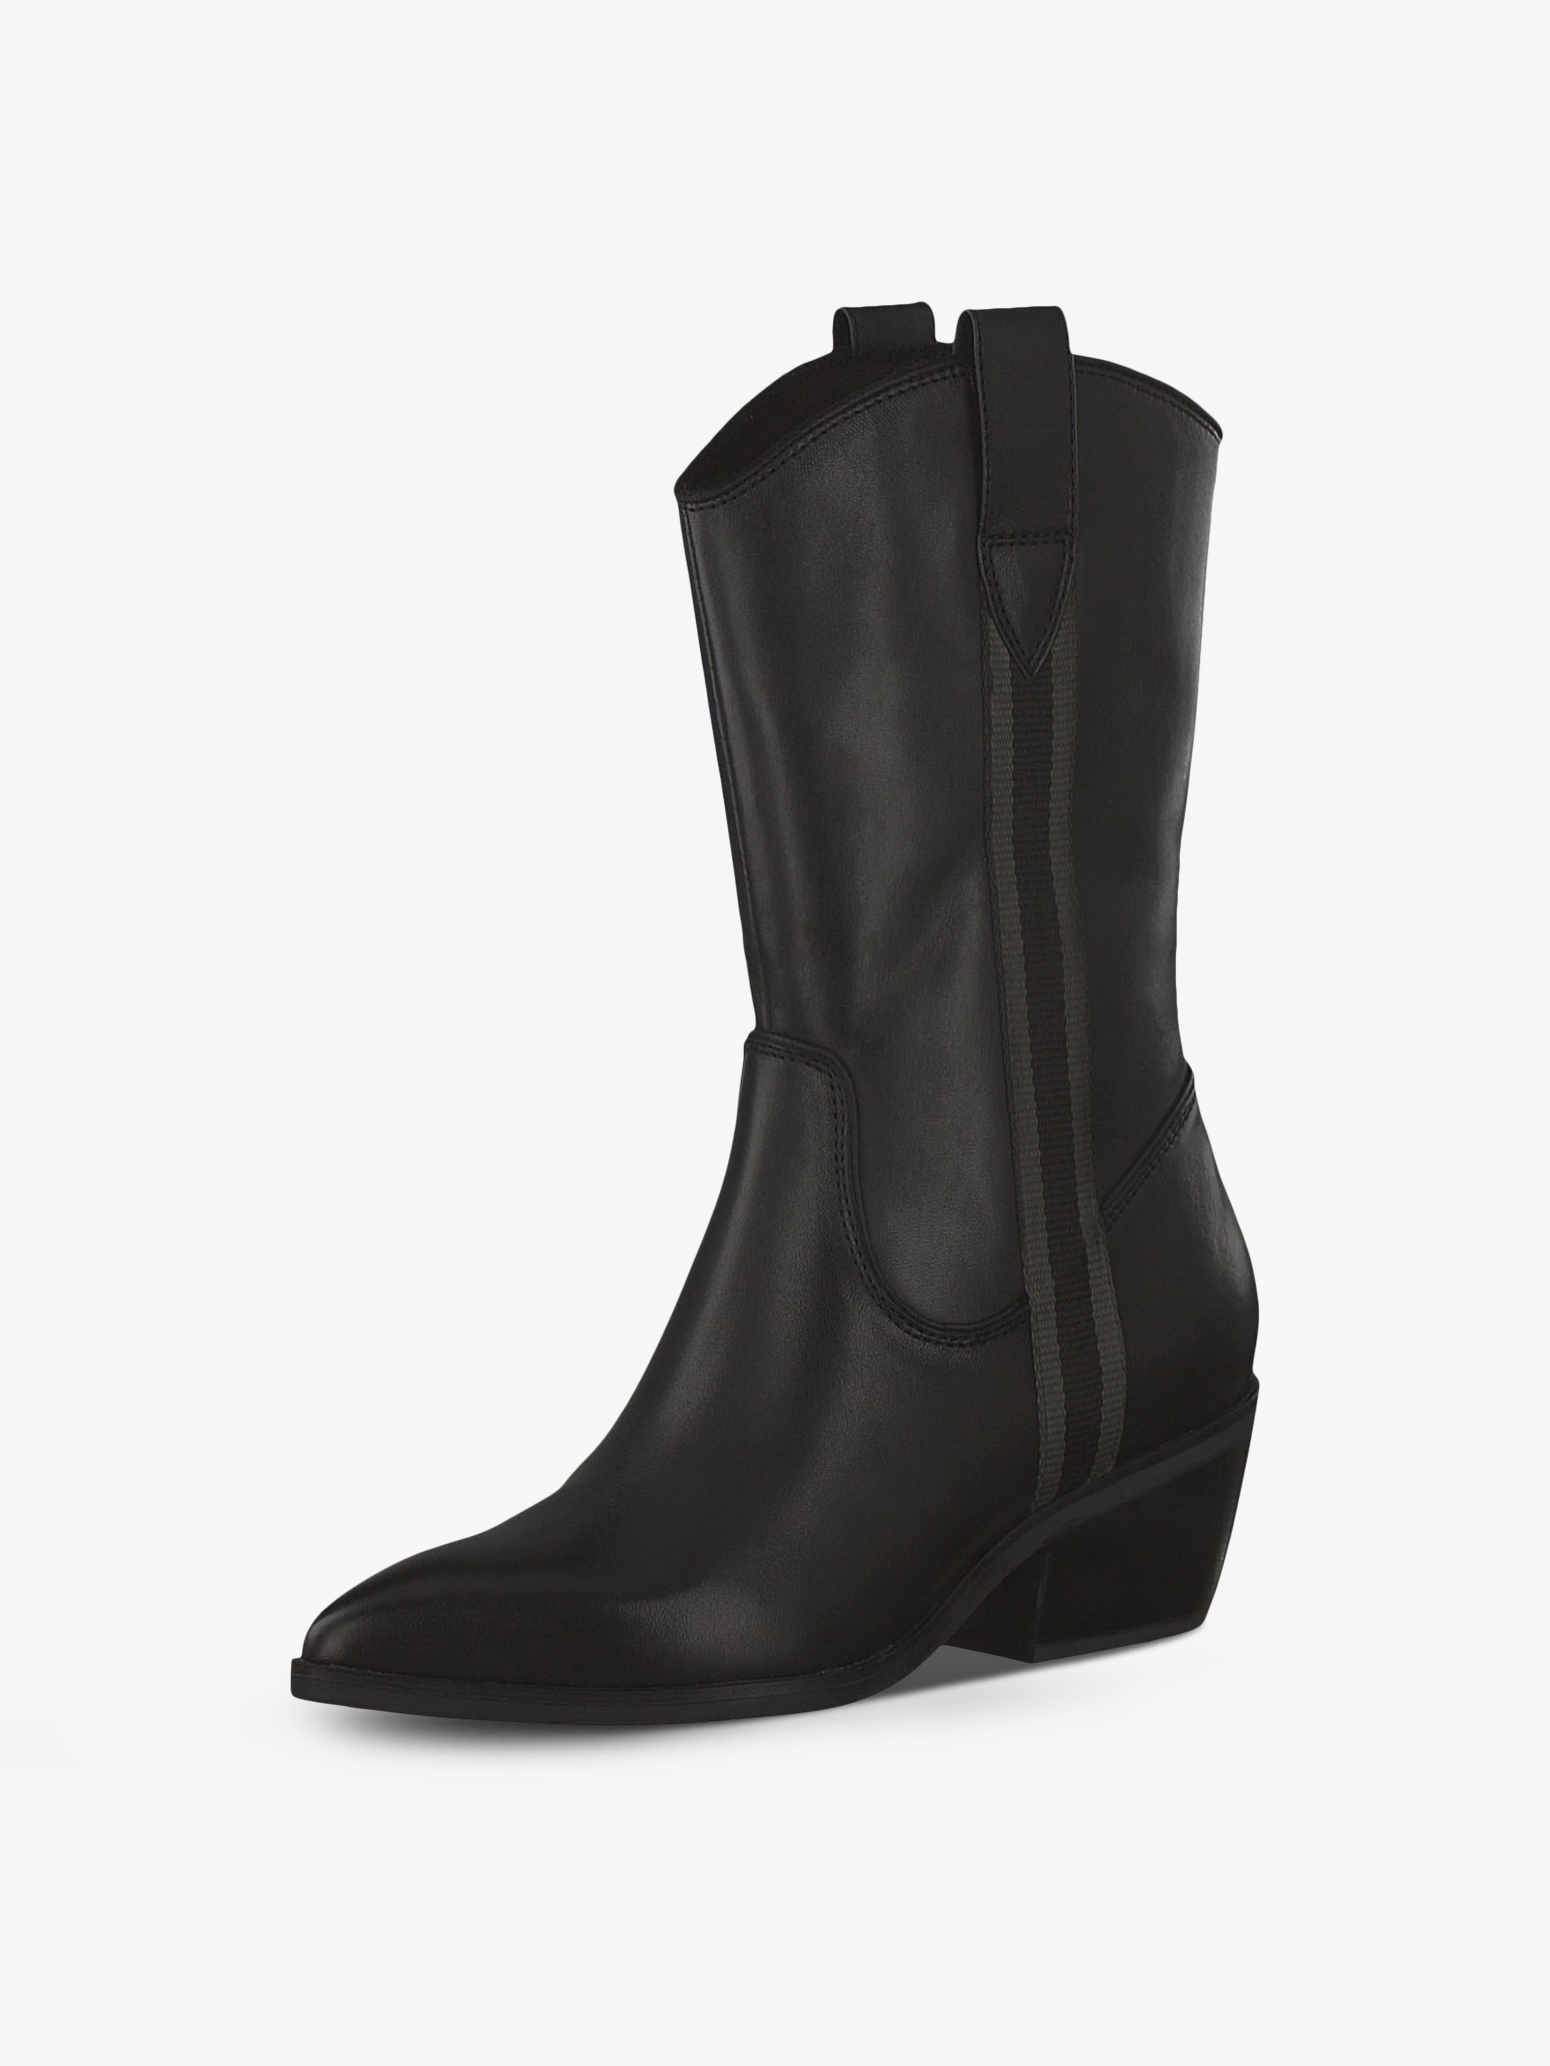 Leather Boots - black, BLACK LEATHER, hi-res